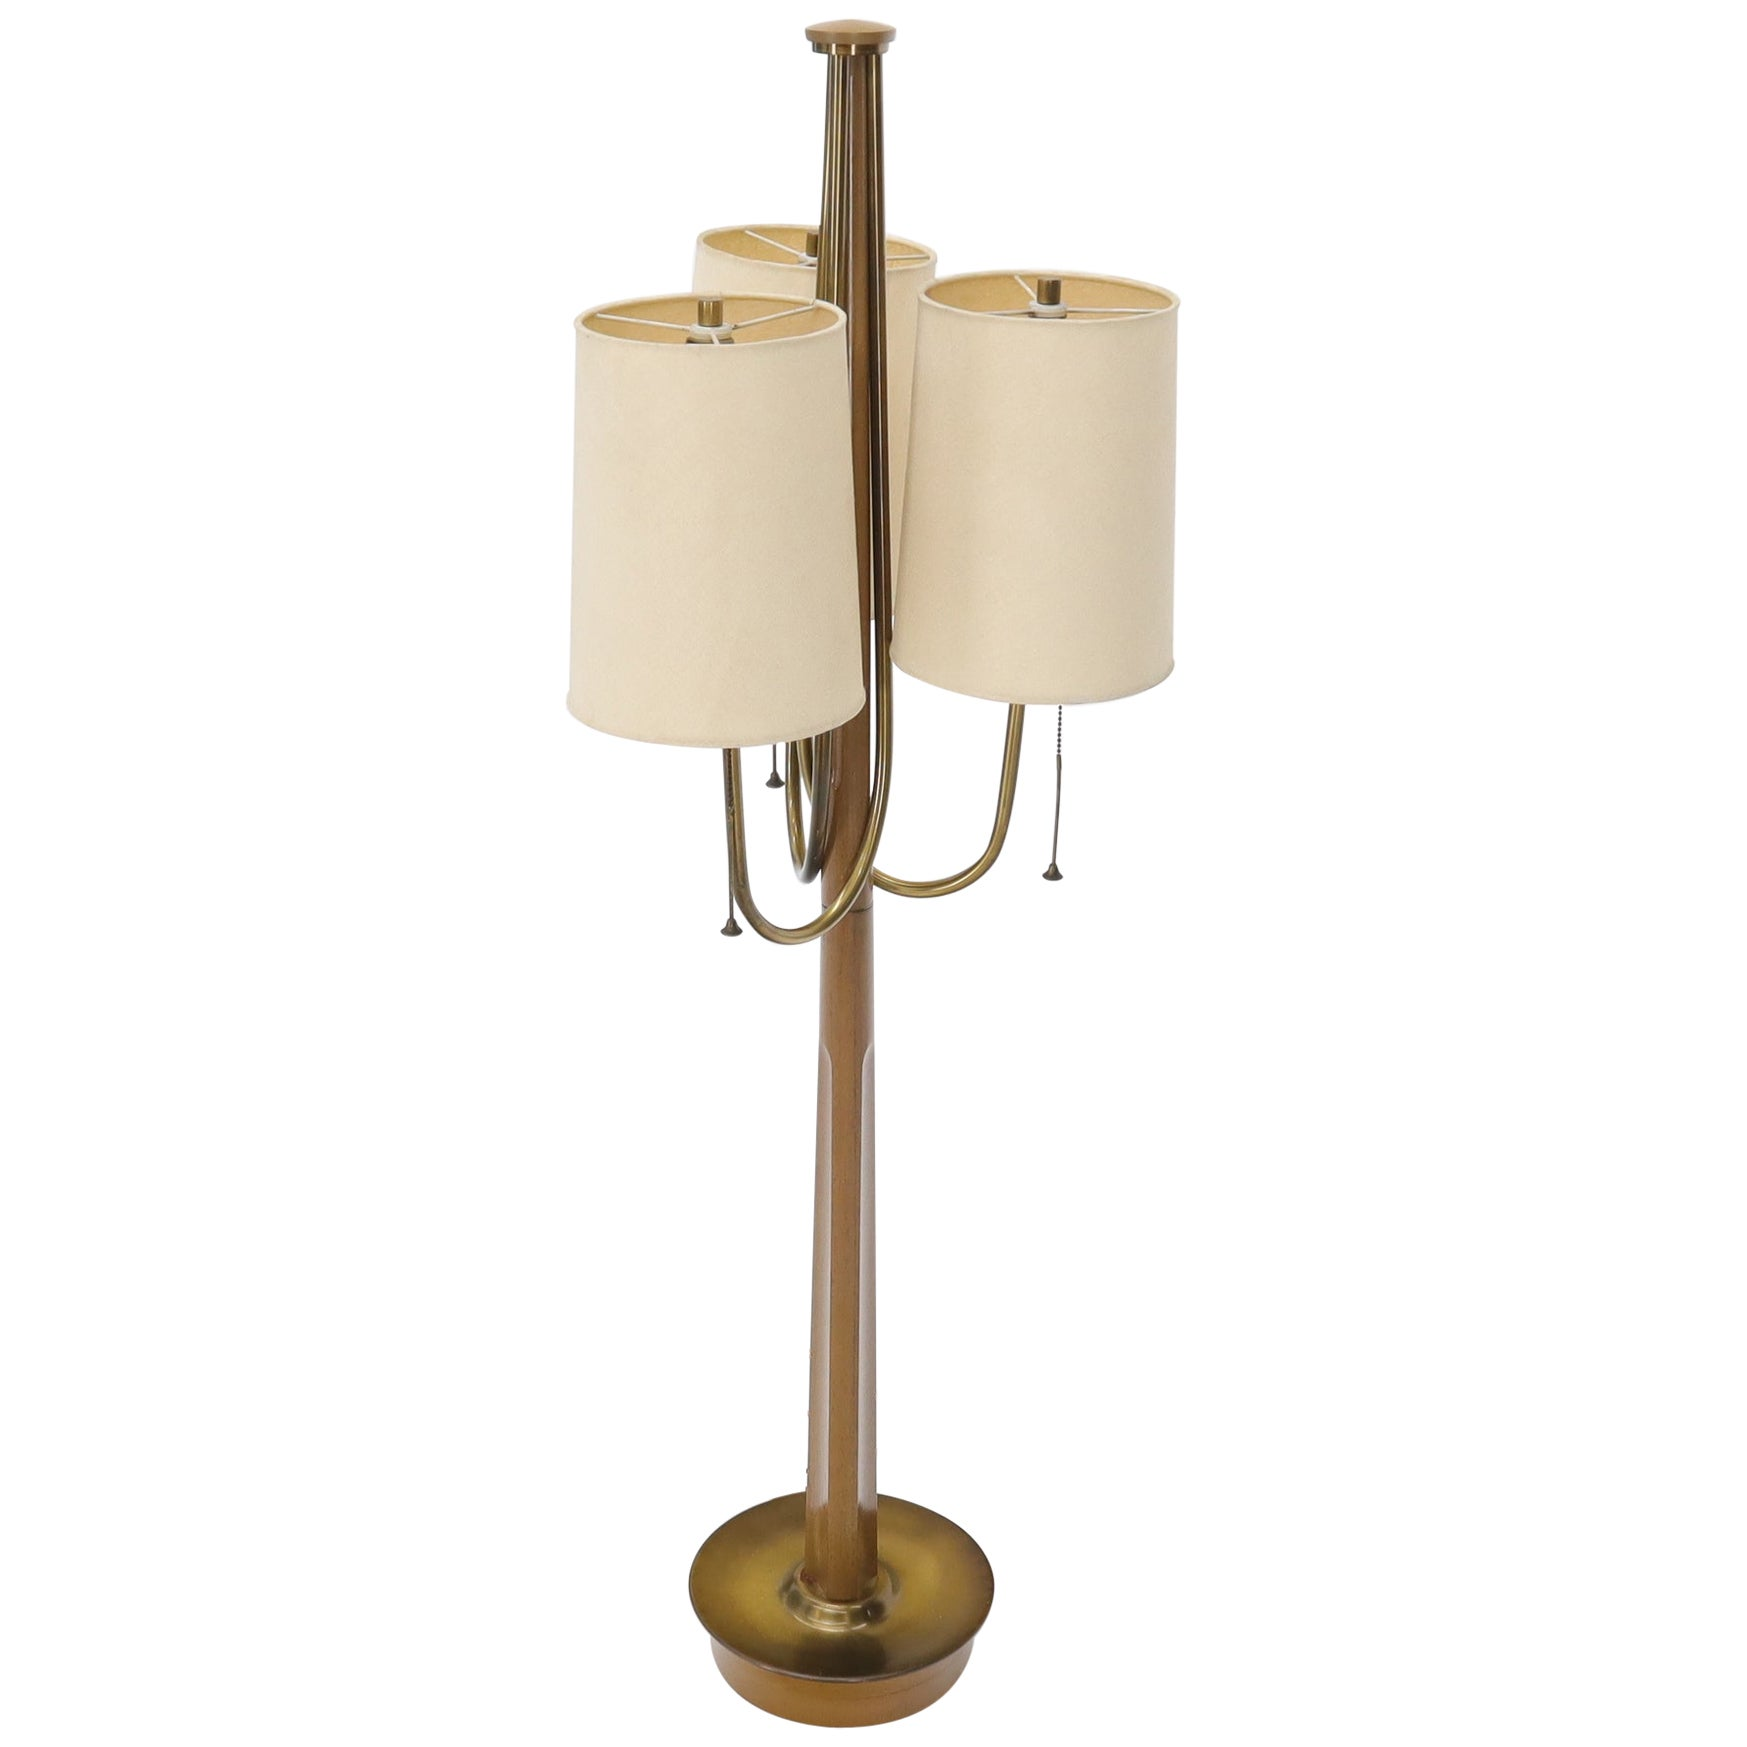 Large Mid-Century Modern Three arms Table or Floor Lamp with Cylinder Shades